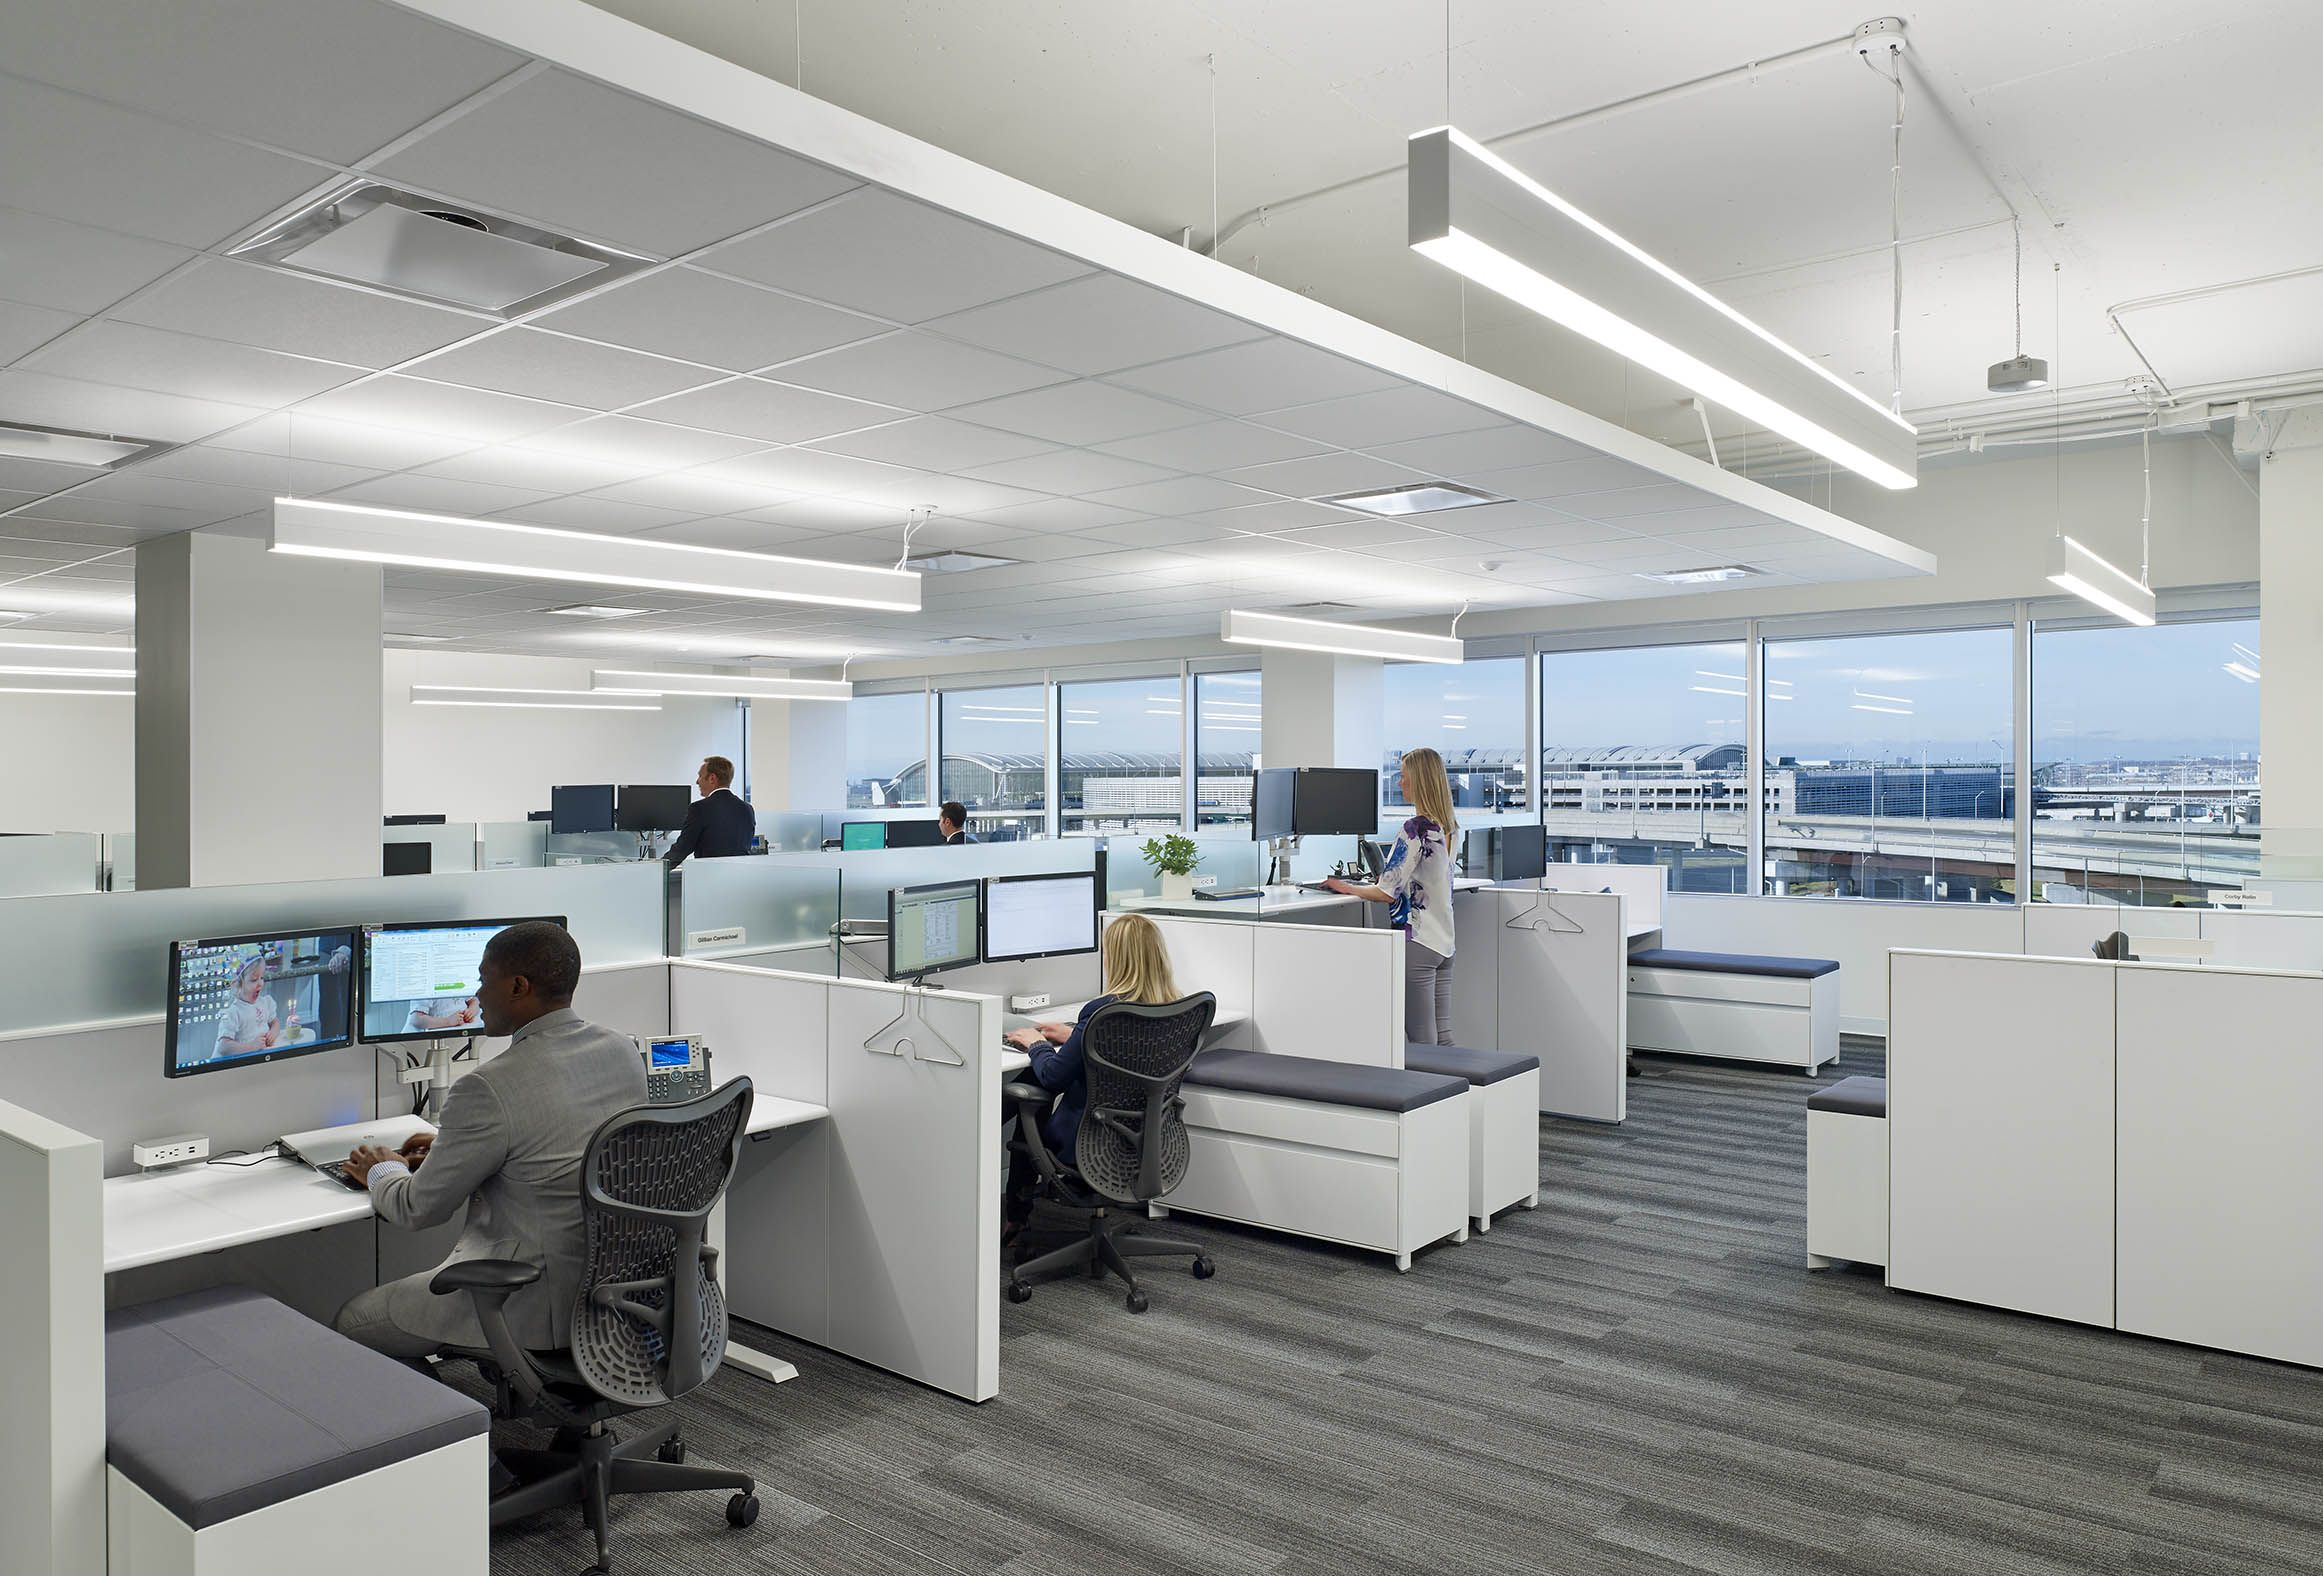 Workplace Of The Future This Office Design Uses A New Approach To Working Corporate Office Design Office Interior Design Office Design